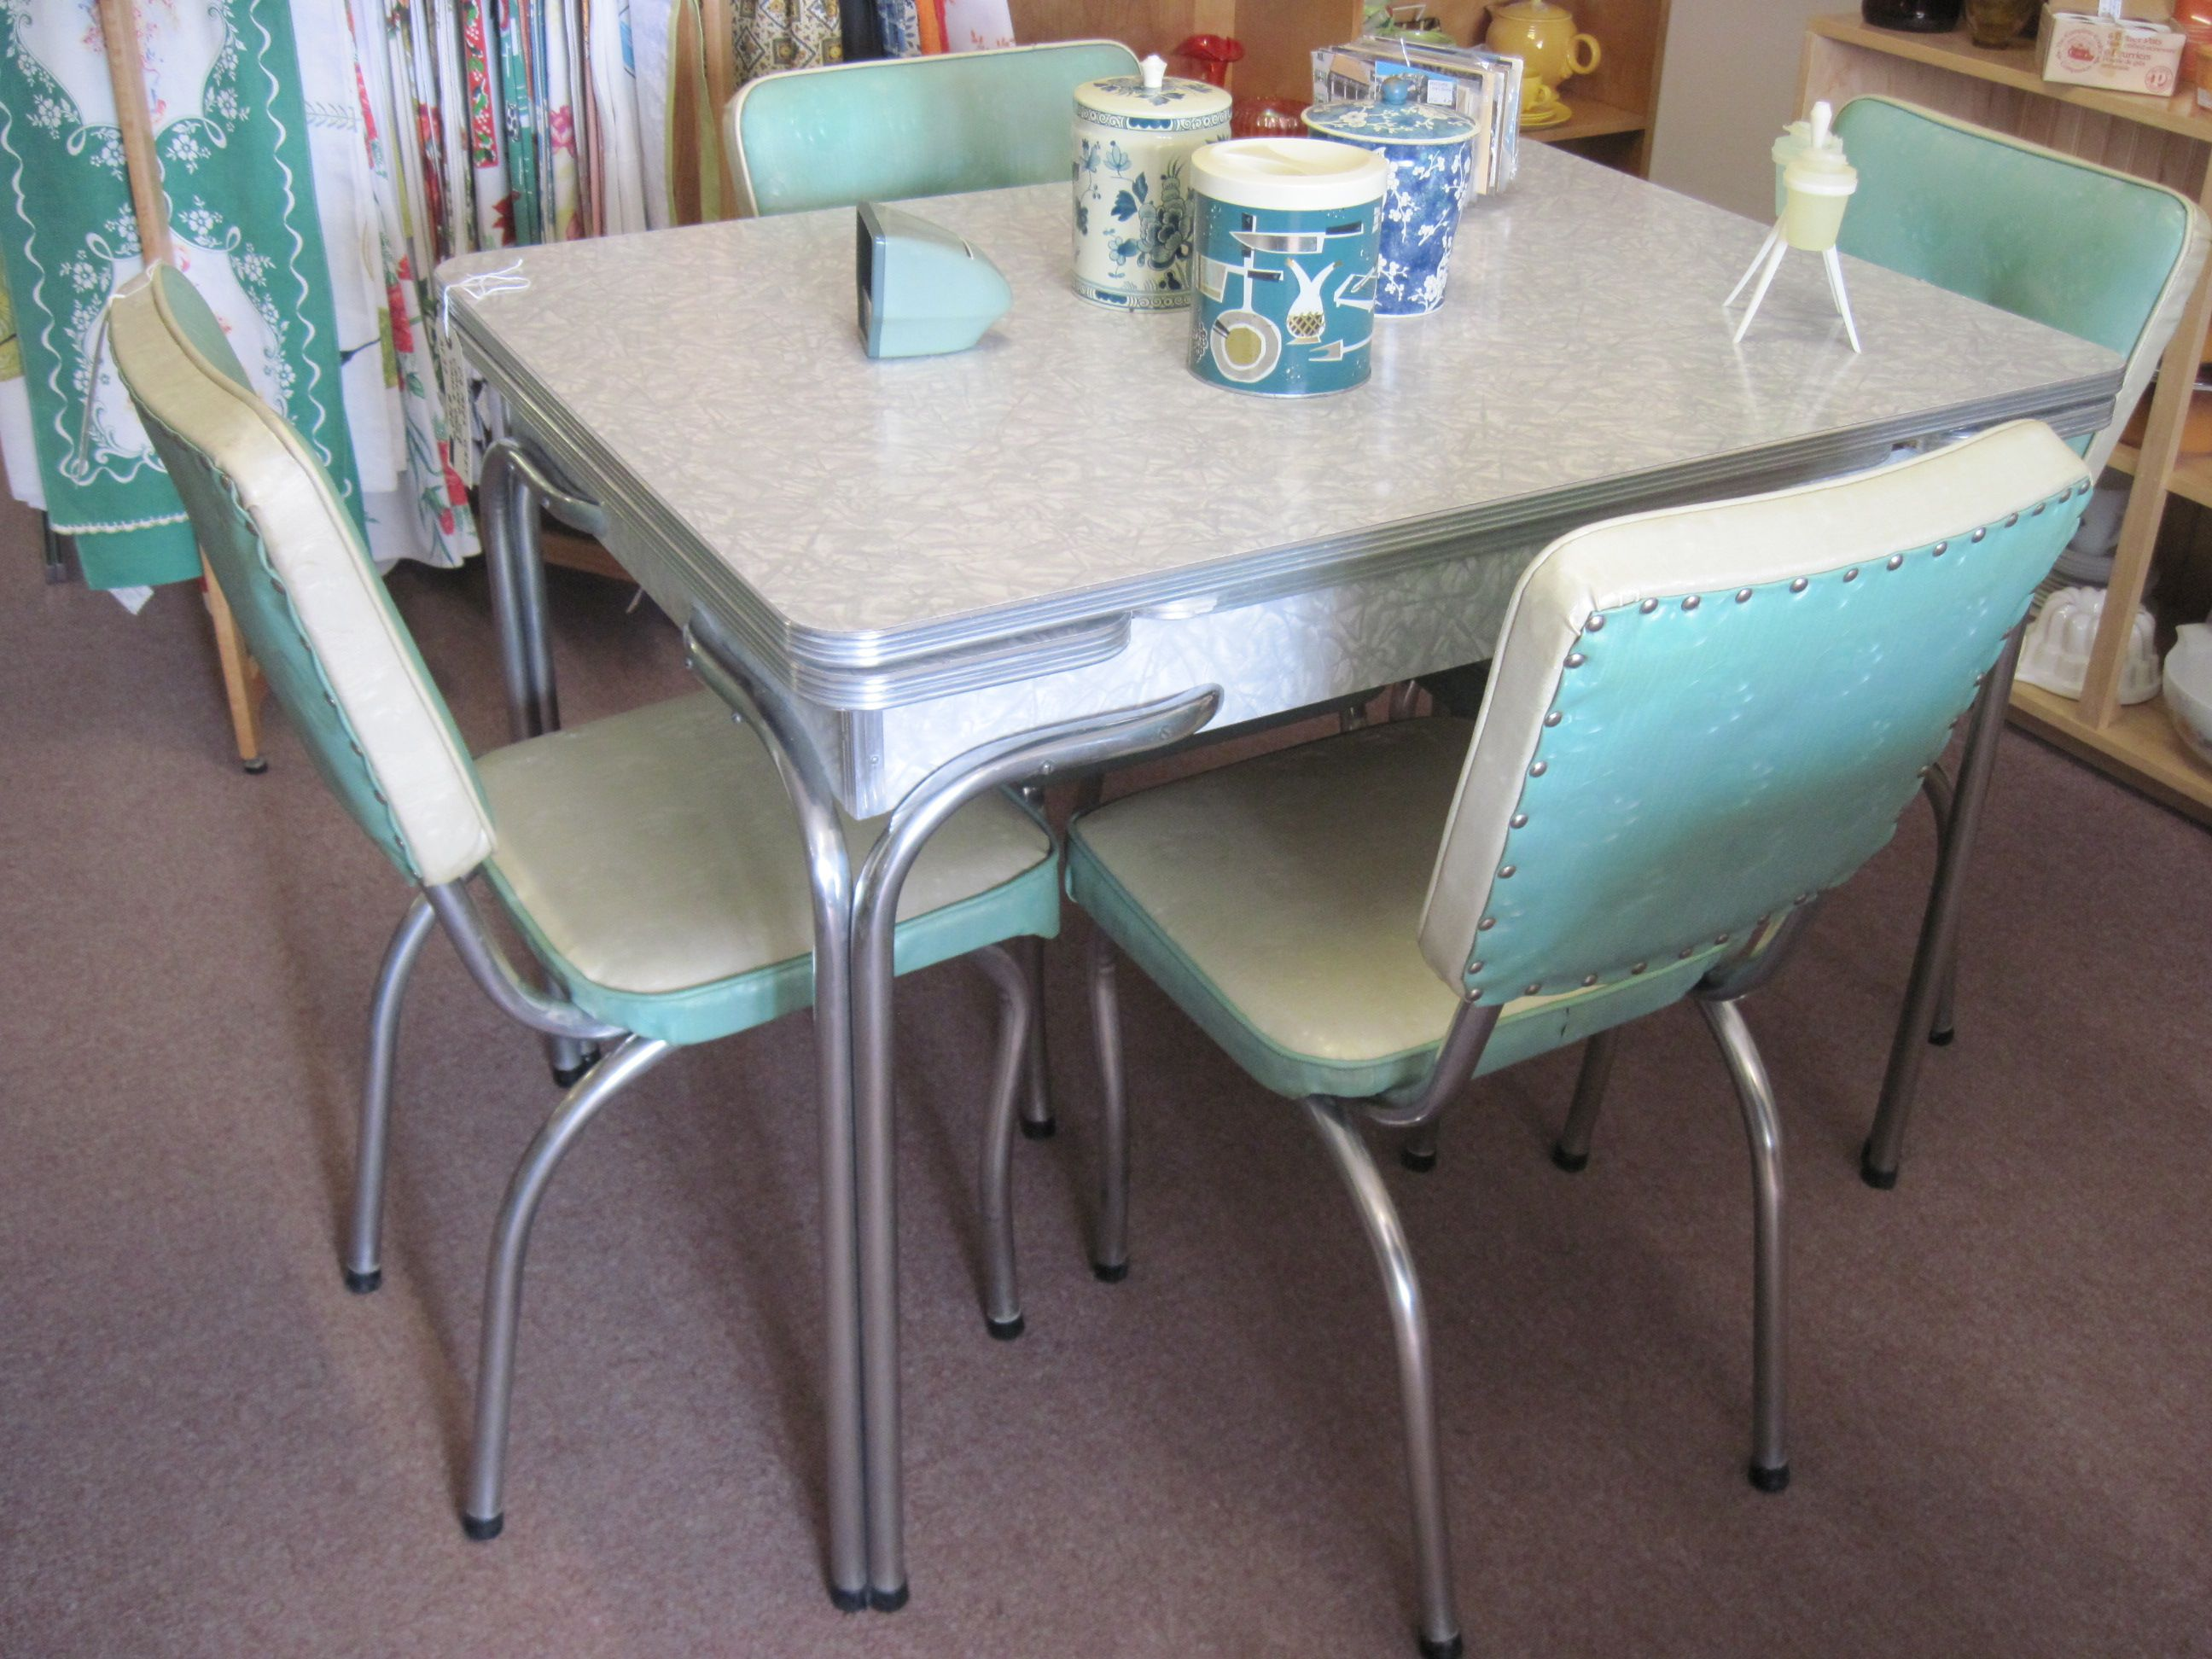 kitchen tables vintage kitchen tables Popular Cheap Vintage Dining Room Set New Interior Design Concept Retro Sets Antique With White Table And Chairs Also Soft Blue Backrest With Glass Dining